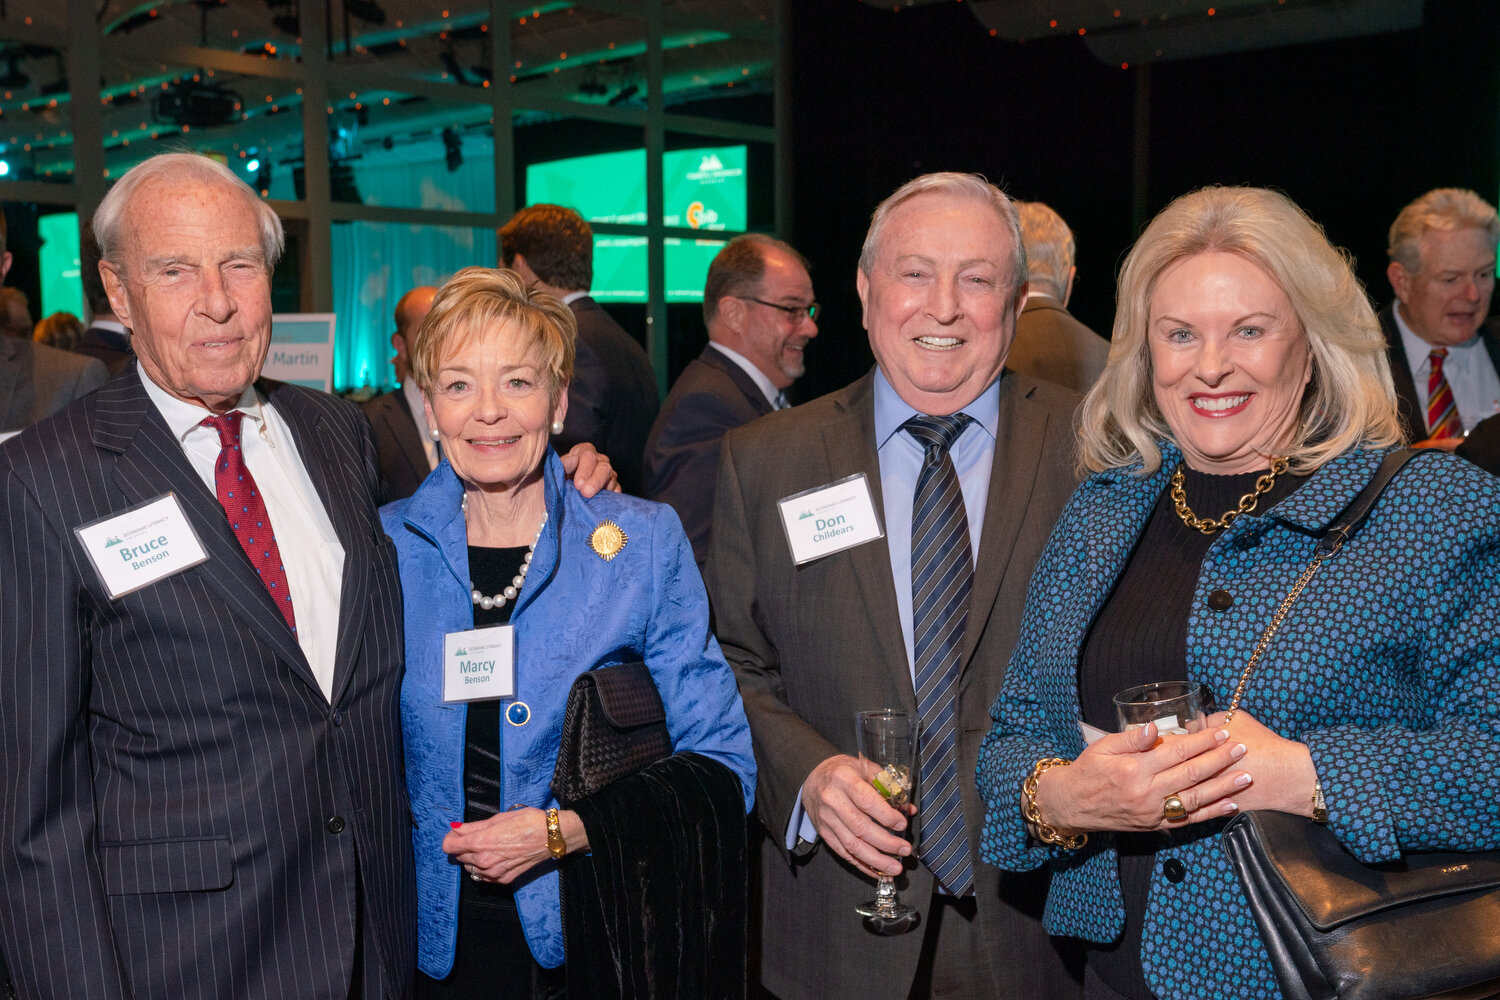 Bruce and Marcy Benson; Don Childears, Colorado Bankers Association, and Linda Childears, Daniels Fund